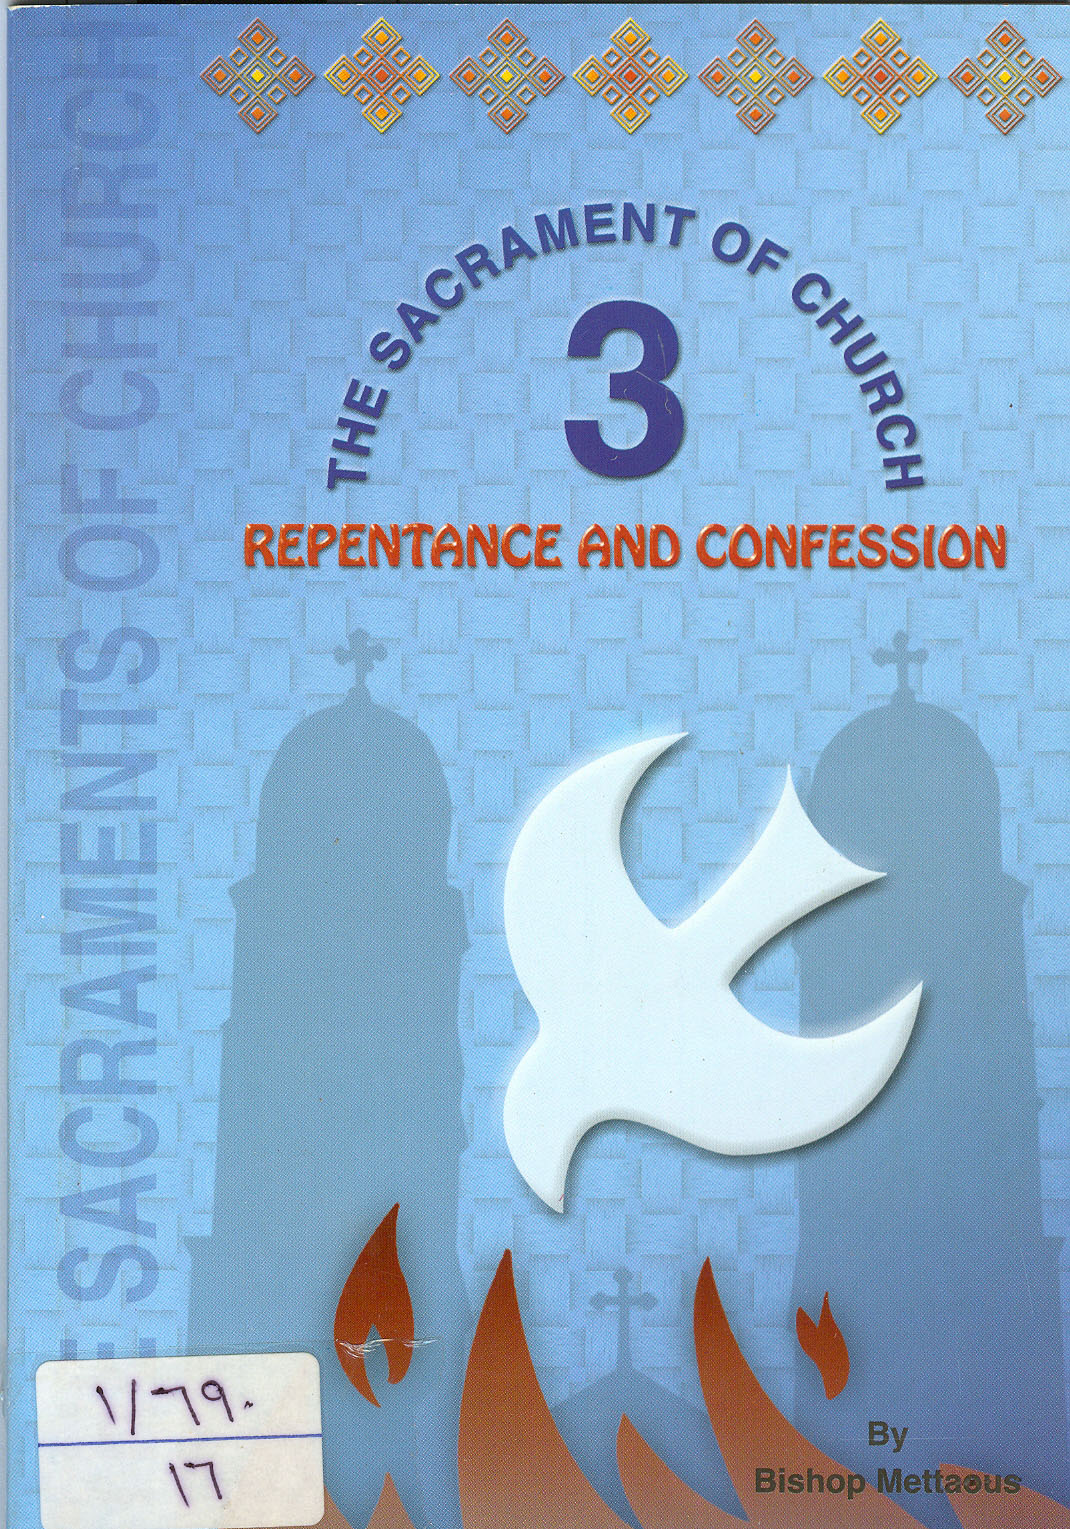 Cover of SACRAMENT OF REPENTANCE AND CONFESSION